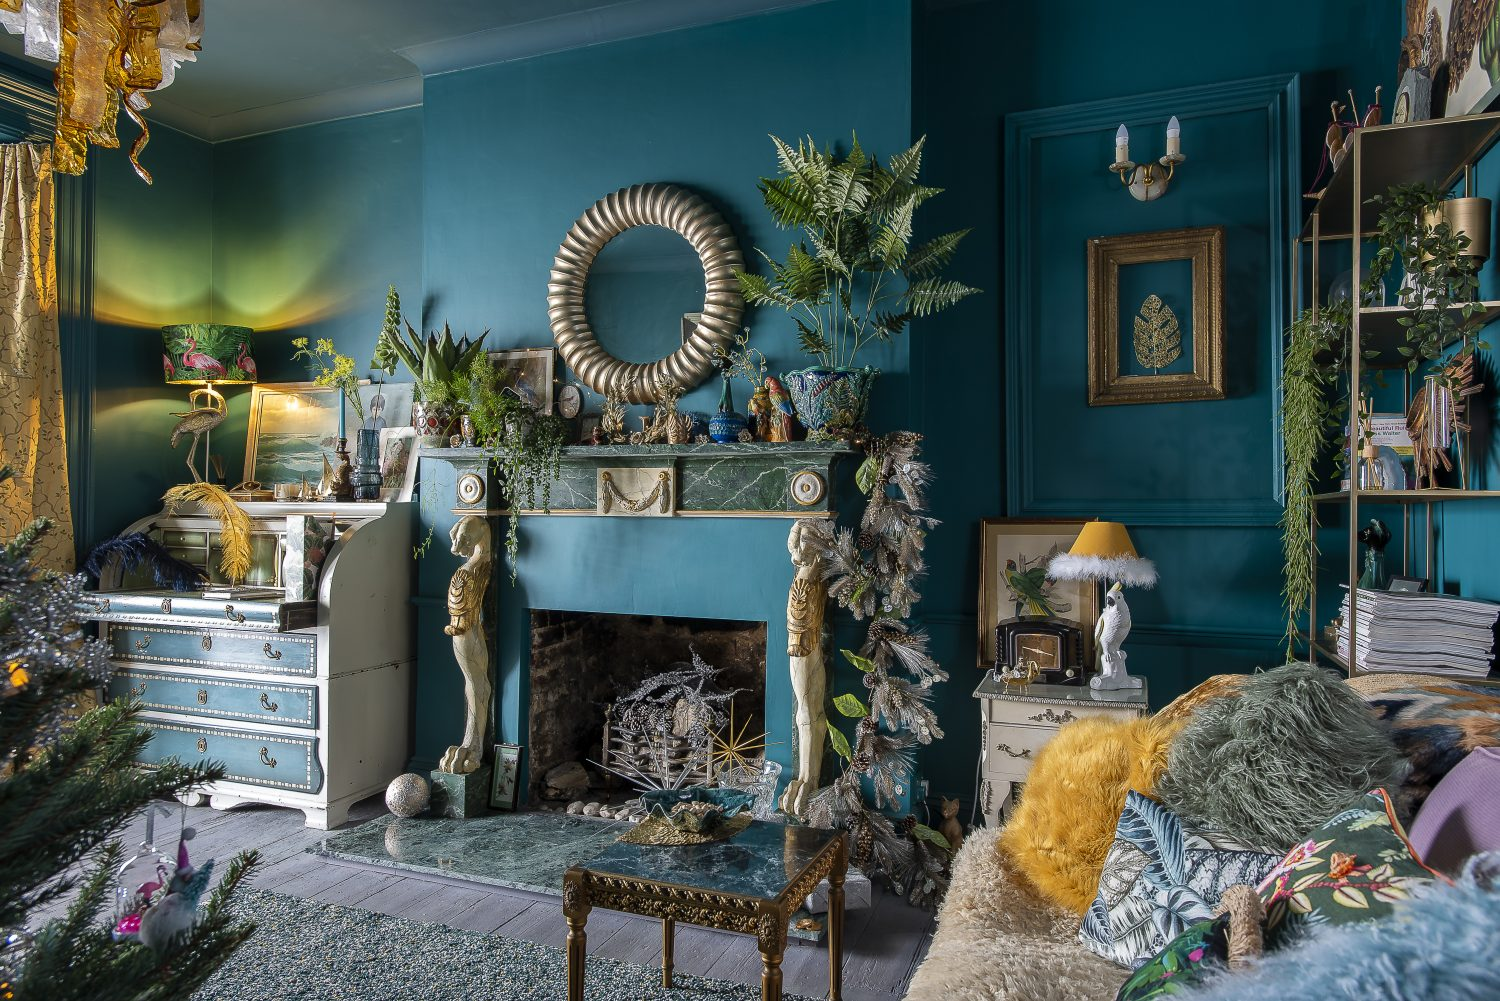 Kimberley chose a rich teal from Papers and Paints for the walls and ceiling of the sitting room. She found the painted wood mantelpiece on eBay